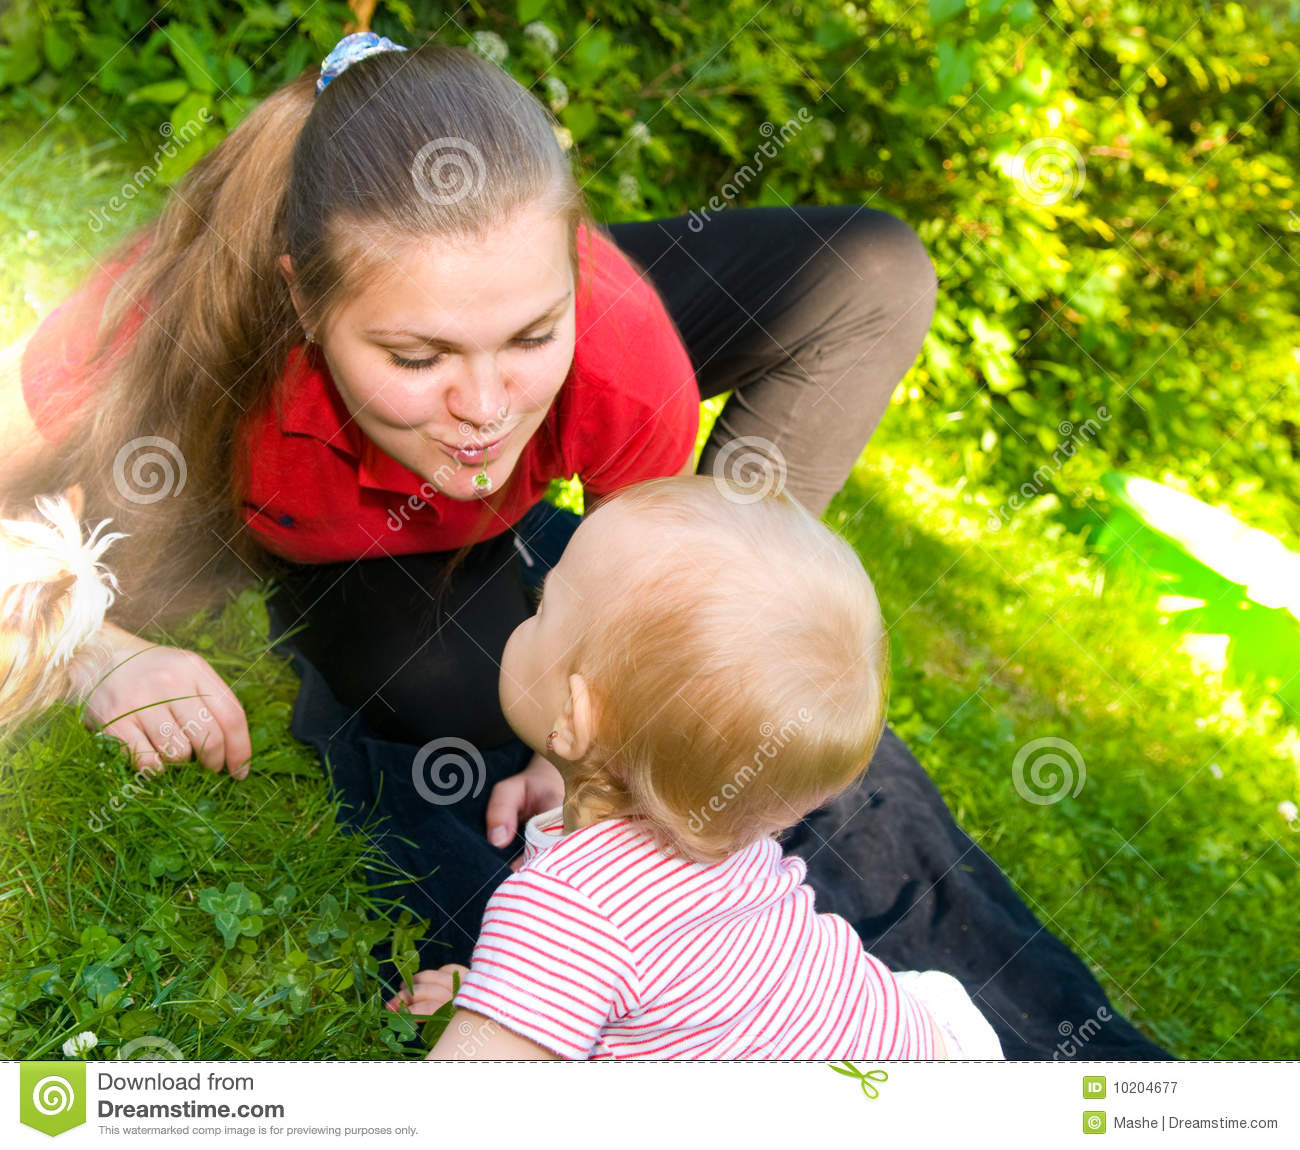 Baby You Re Amazing: Amazing Baby And Mother Royalty Free Stock Photography